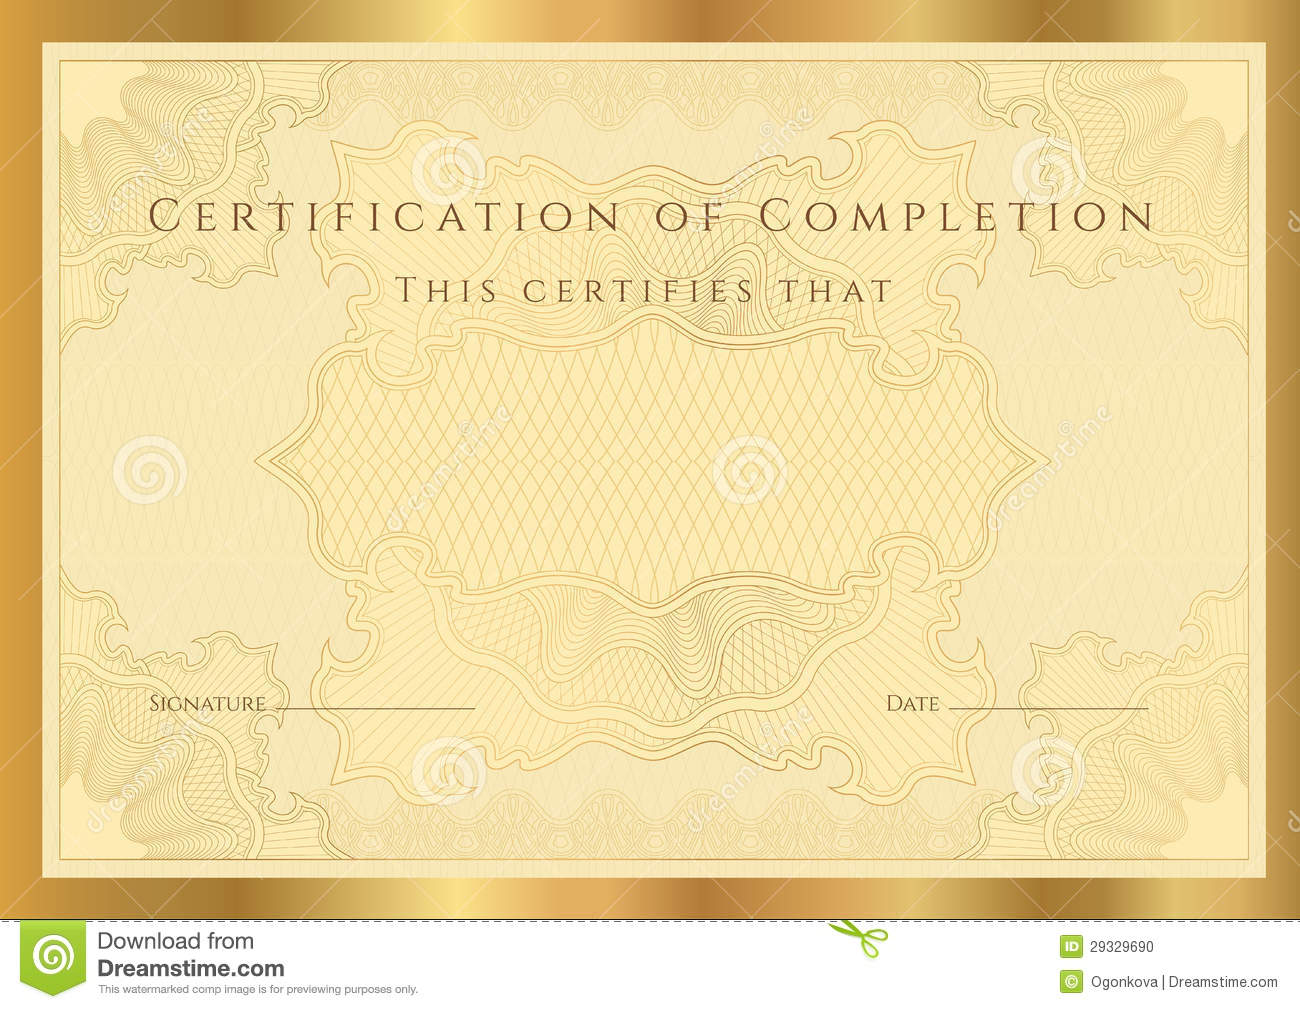 Birth certificate template free download certificate diploma of completion template stock photo image 1betcityfo Gallery